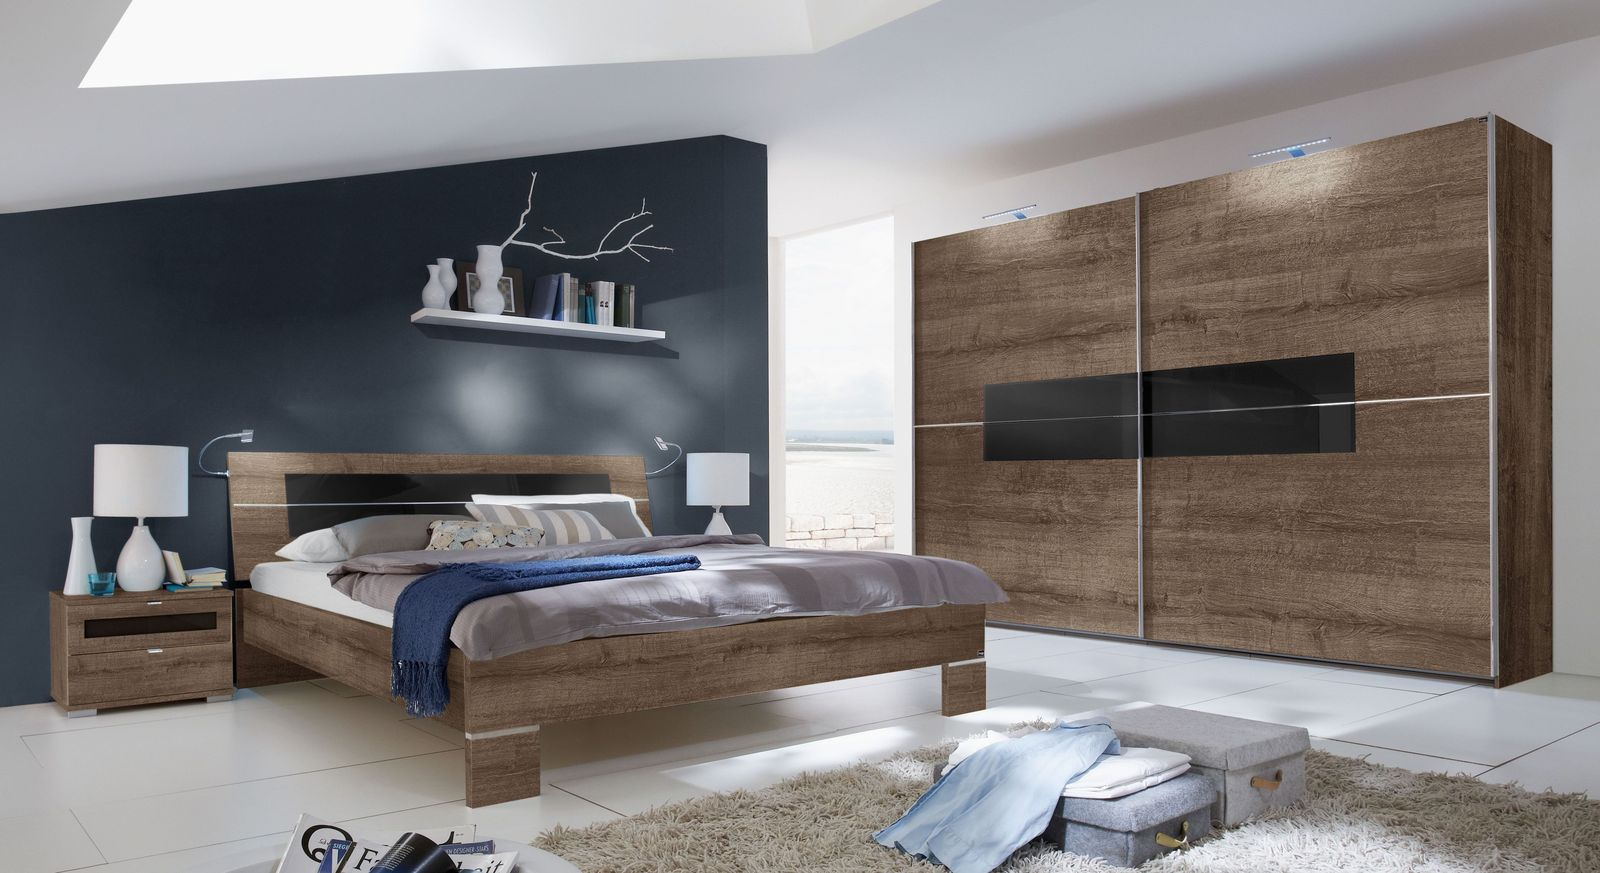 sch n g nstige schlafzimmer komplett deutsche deko. Black Bedroom Furniture Sets. Home Design Ideas